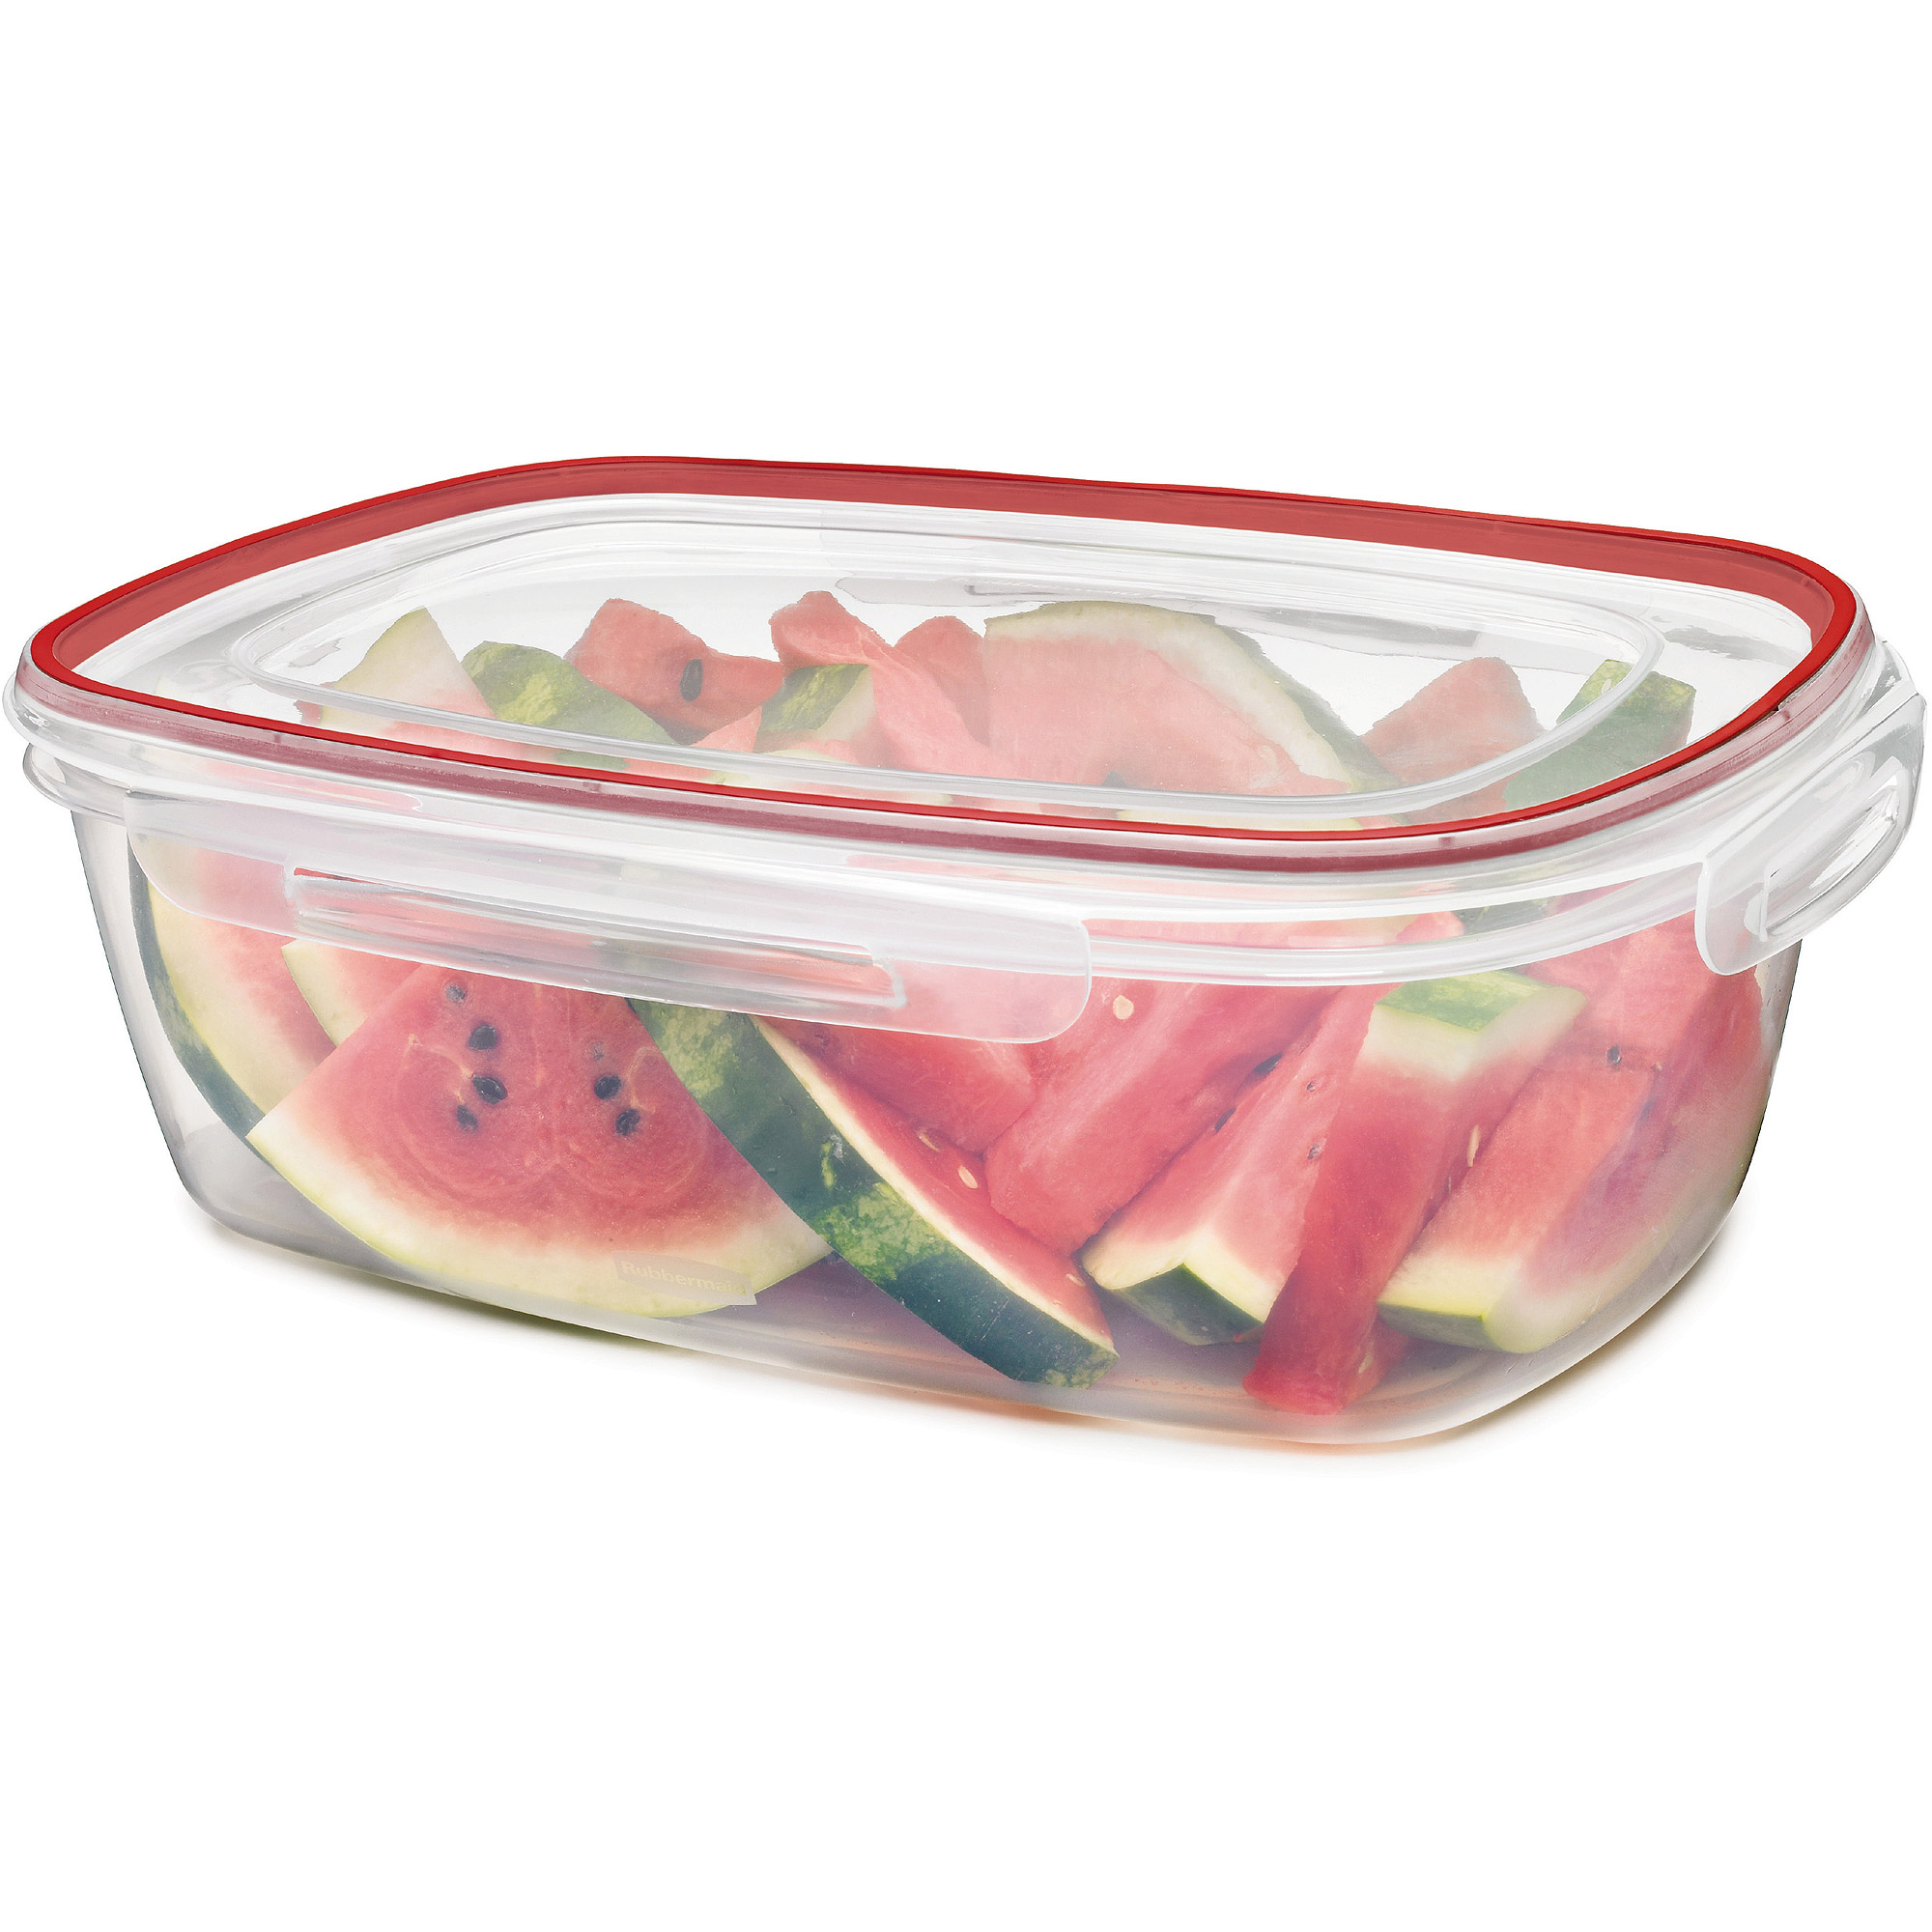 Rubbermaid Lock-Its 2.5-Gallon Rectangle Canister with Lid